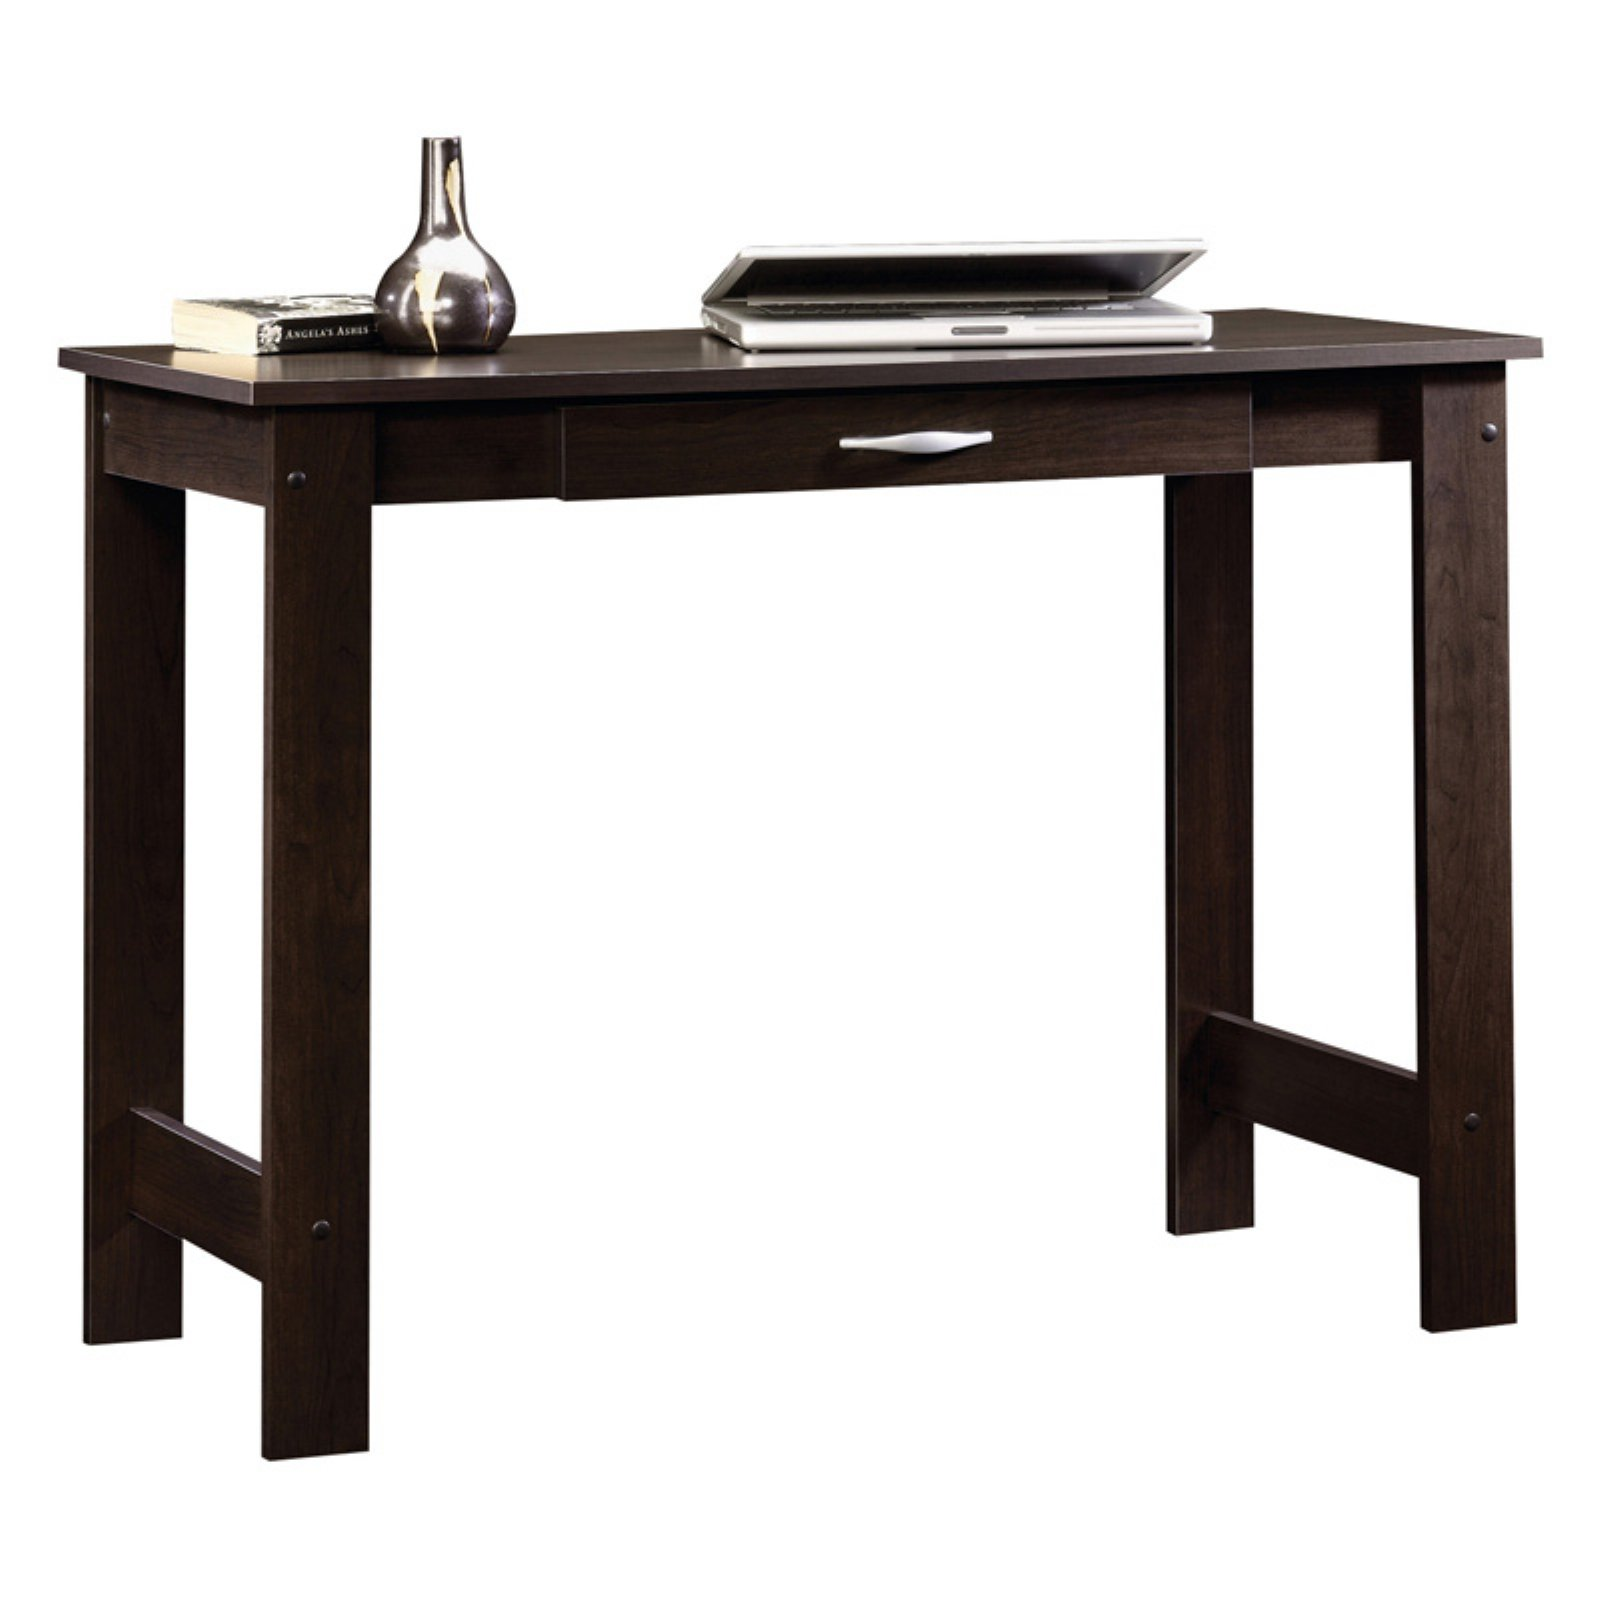 Sauder Beginnings Writing Table, Cinnamon Cherry Finish